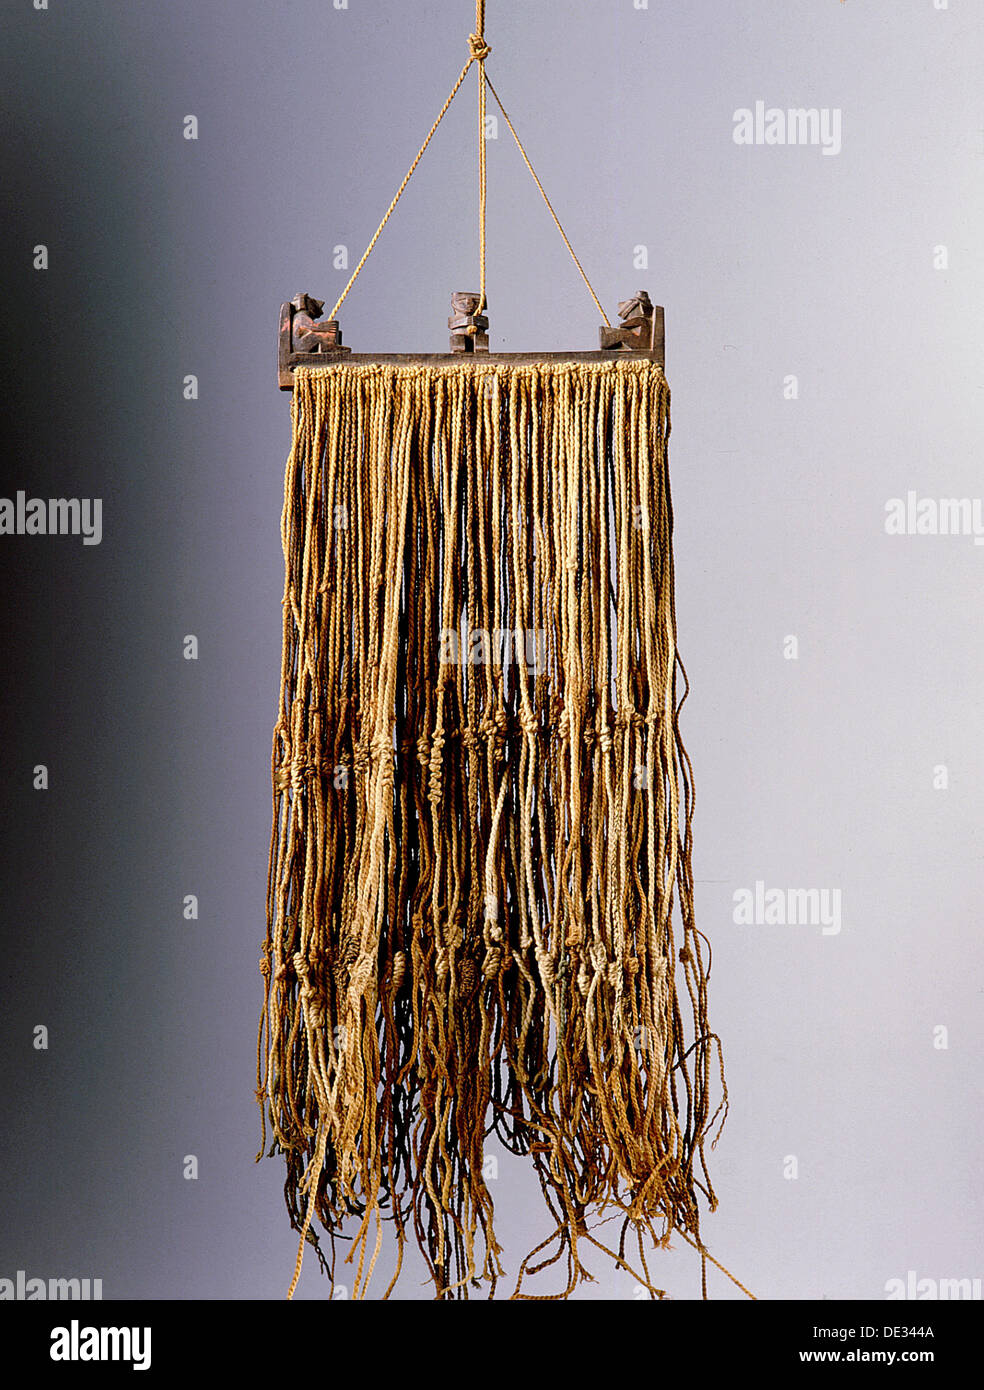 The quipu was a series of knotted strings by which the Inca kept their administrative records, though a more esoteric Stock Photo